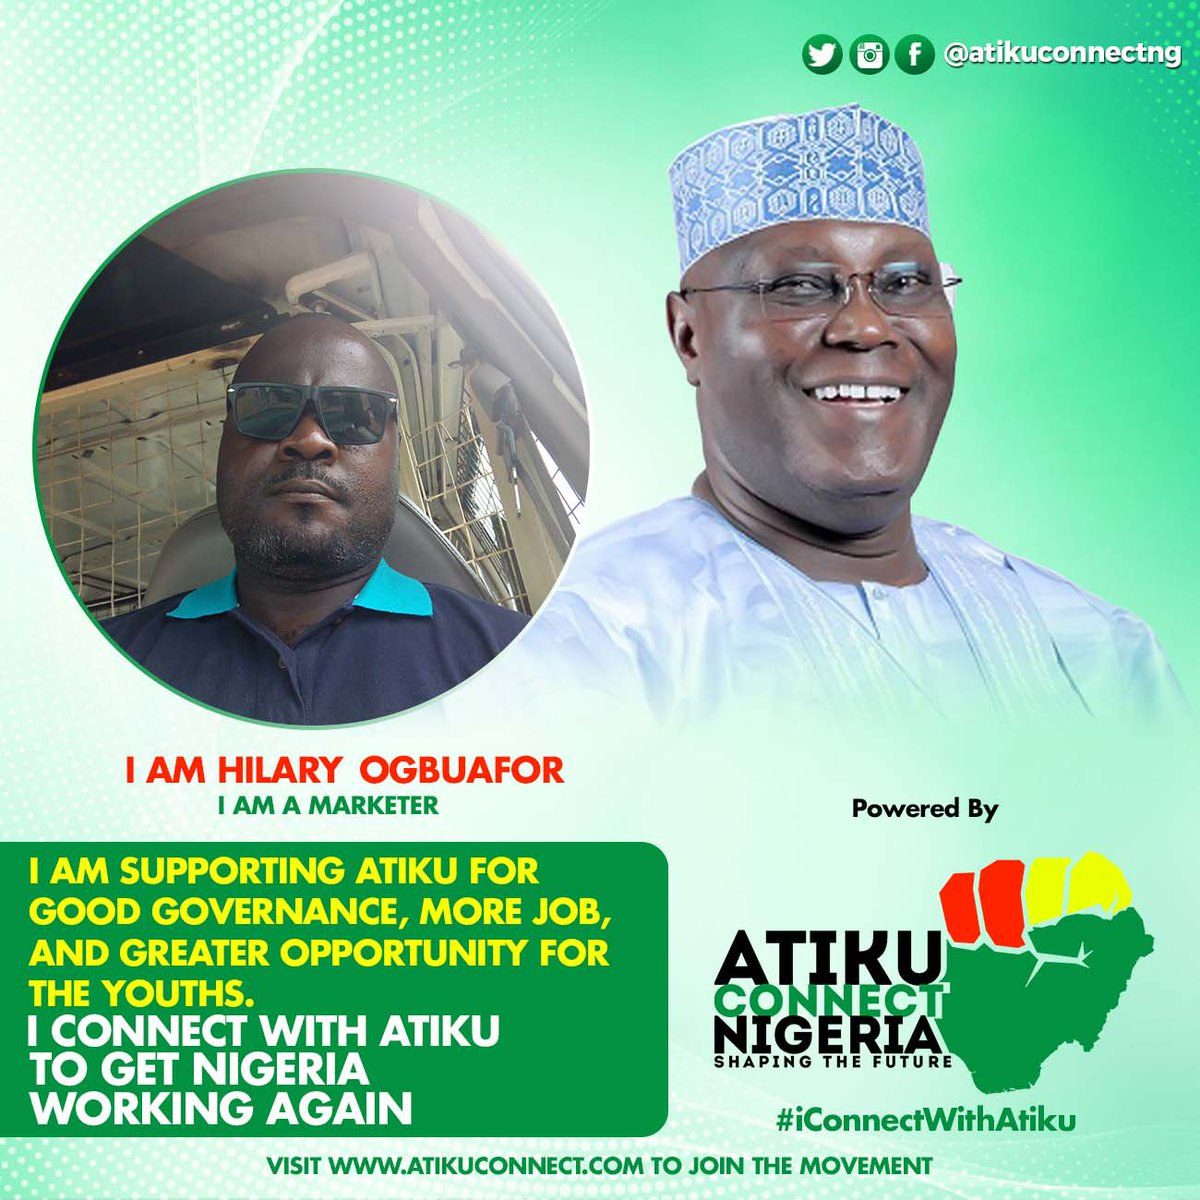 #iConnectWithAtiku for good governance, more Job, and greater opportunity for the youths. #AtikuConnect #AtikuConnectNigeria #AtikuObi2019 #LetsGetNigeriaWorkingAgain @atiku @VOTERIGHT2019 @YouthsForAtiku @OGBUAFORHILARY <br>http://pic.twitter.com/rBhjxu6Djh